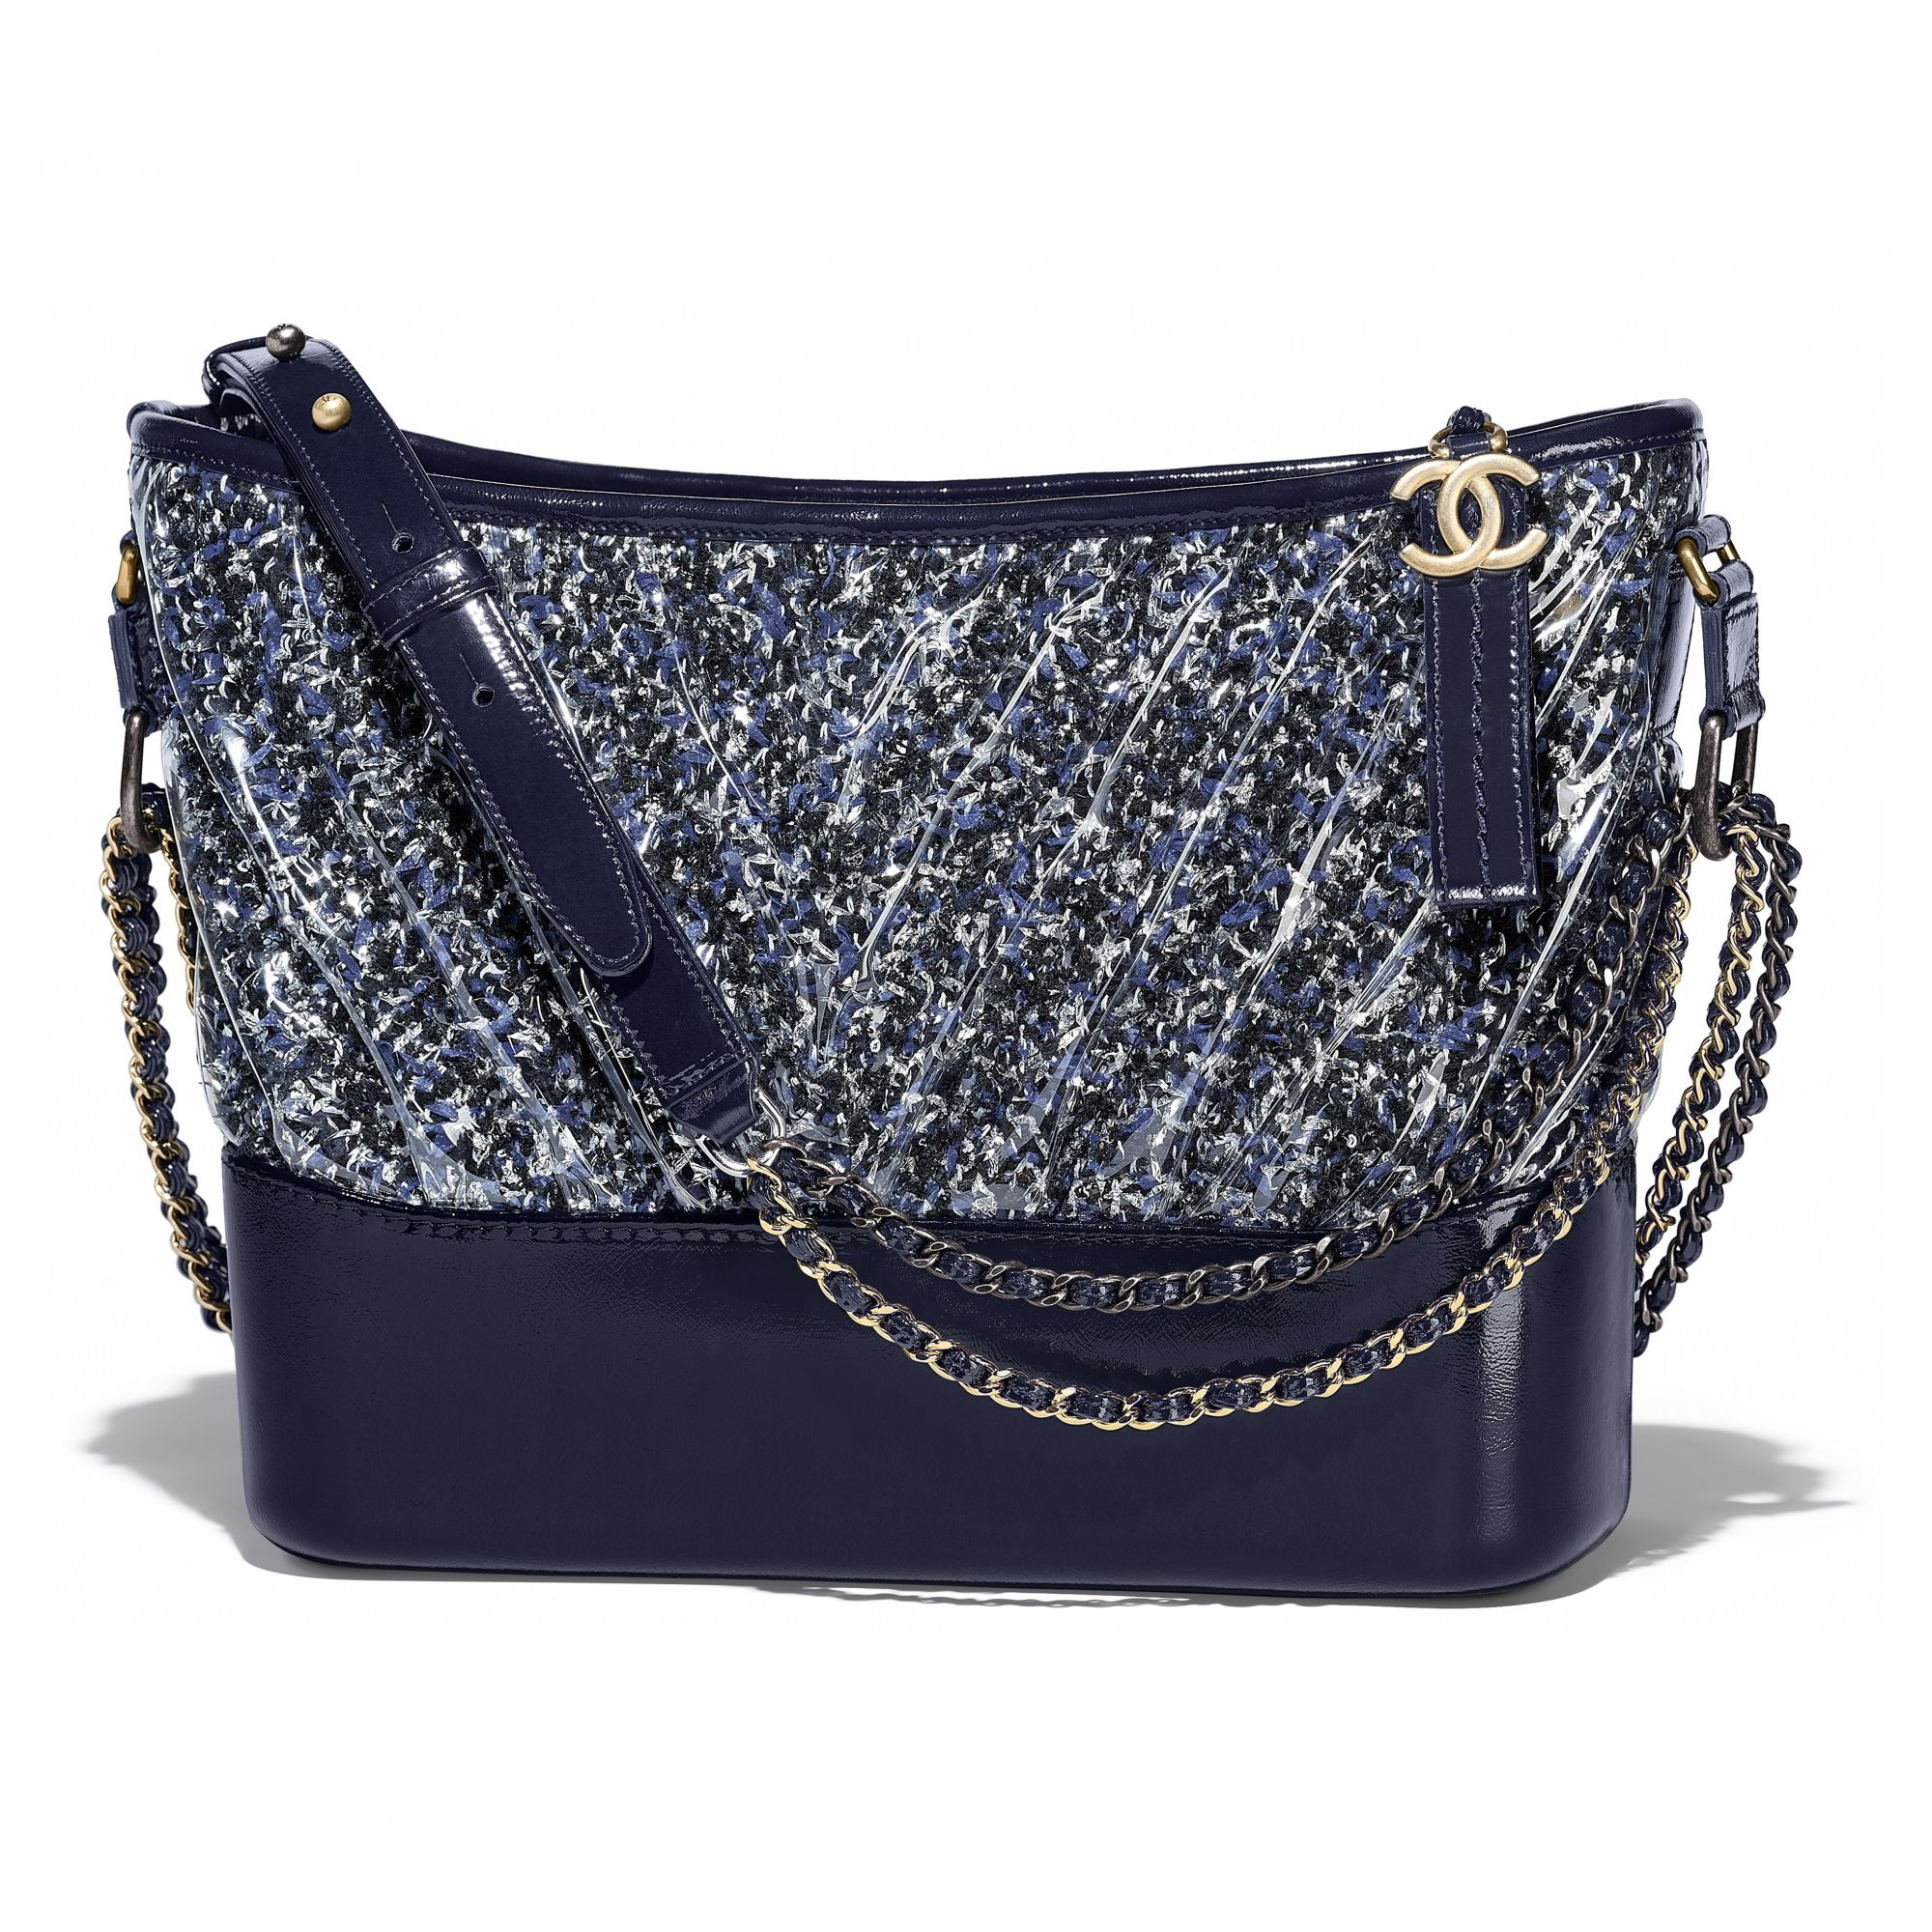 Chanel Gabrielle bag in multicolored tweed, transparent PVC and dark blue leather